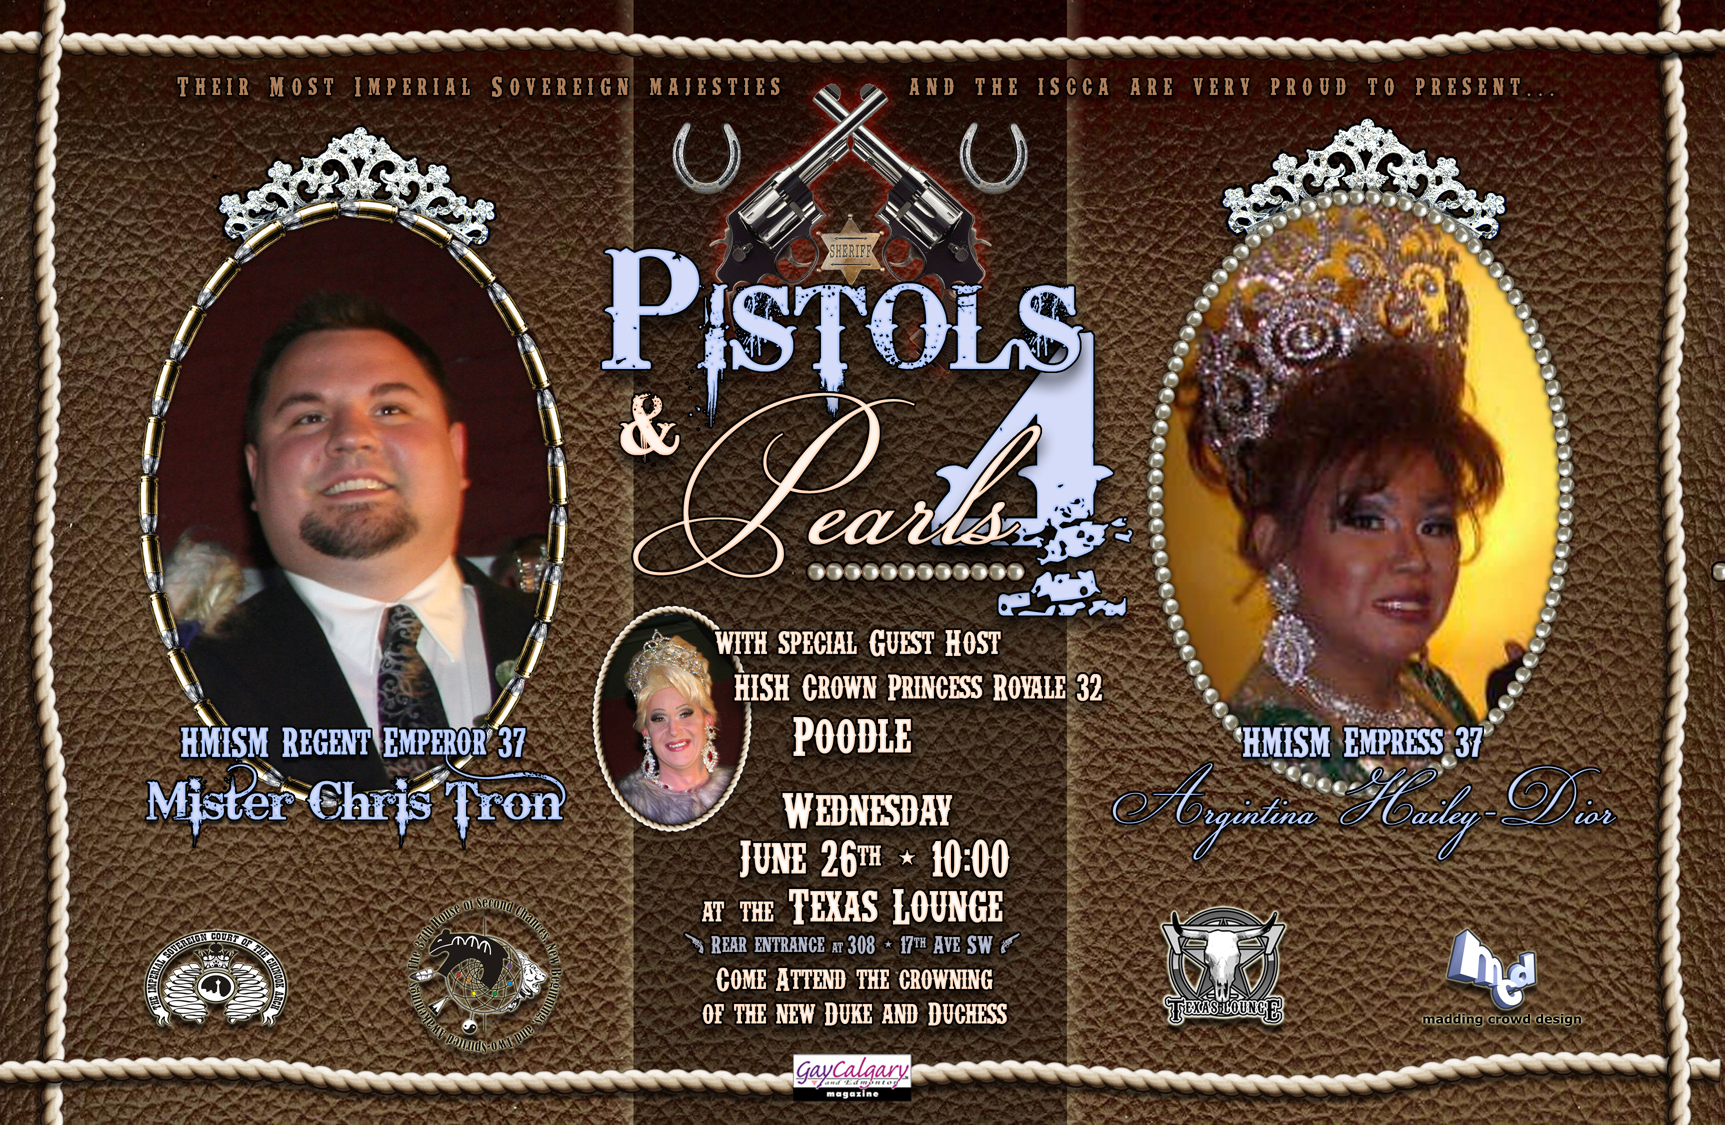 ISCCA: Pistols and Pearls (Calgary, Wed Jun 26, 10:00AM)